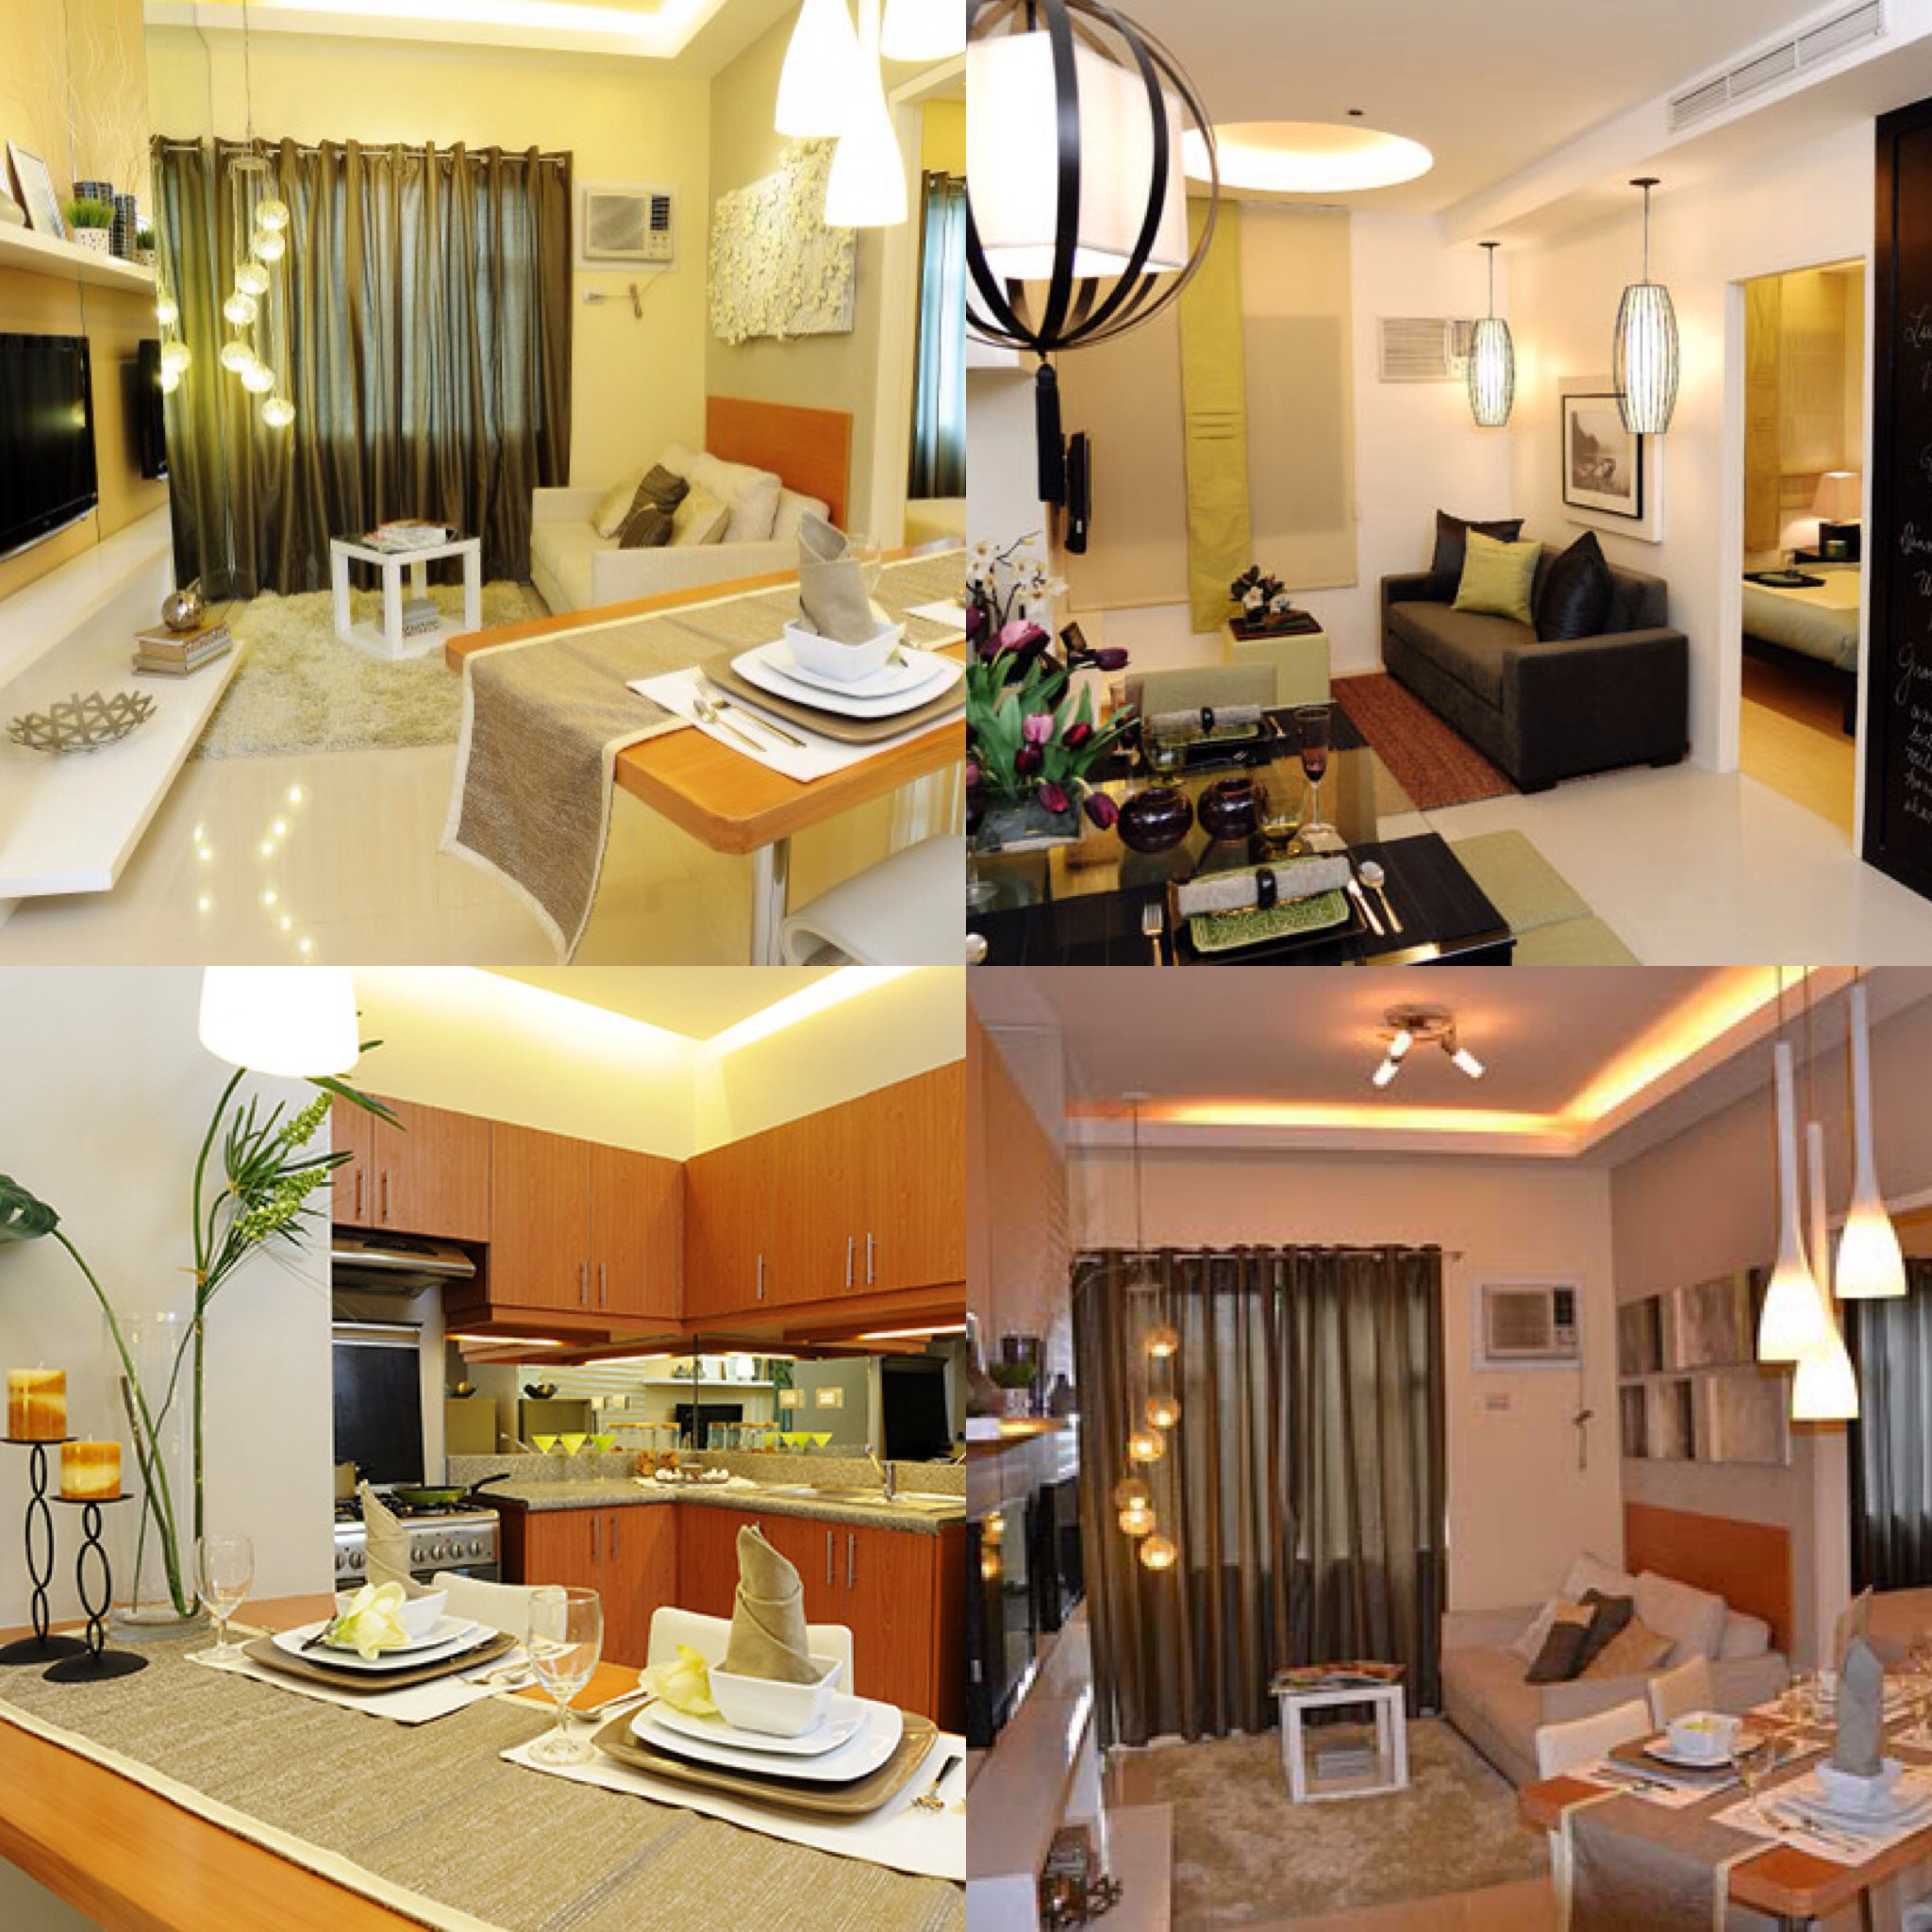 penthouse condo magnolia residences new manila qc for sale 09176747343 rico navarro